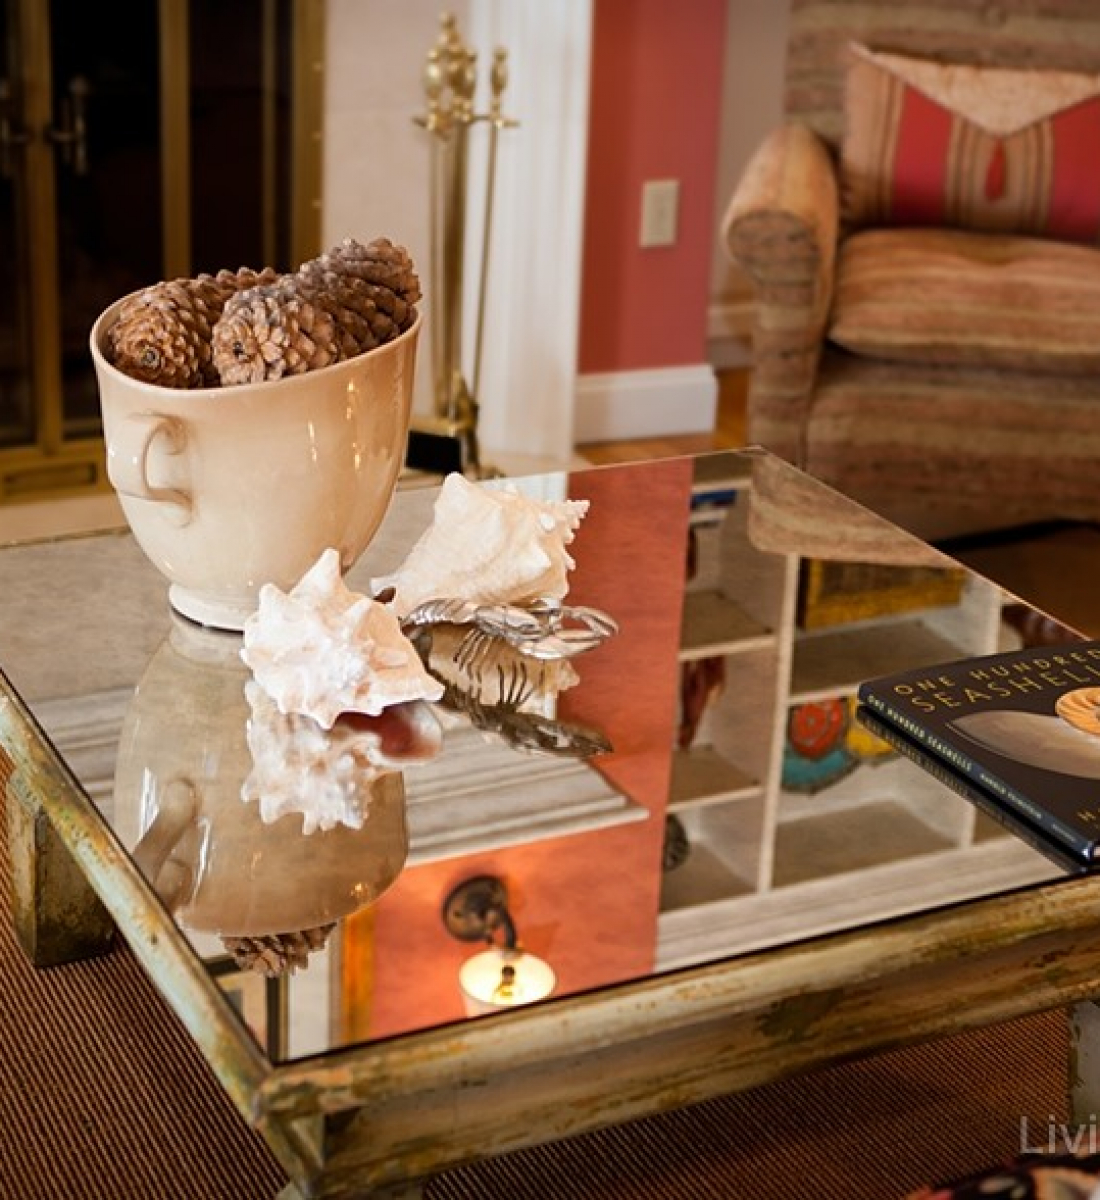 Living Design RI offers full Interior Design services to create beautiful & unique environments for living, working, dining and entertaining